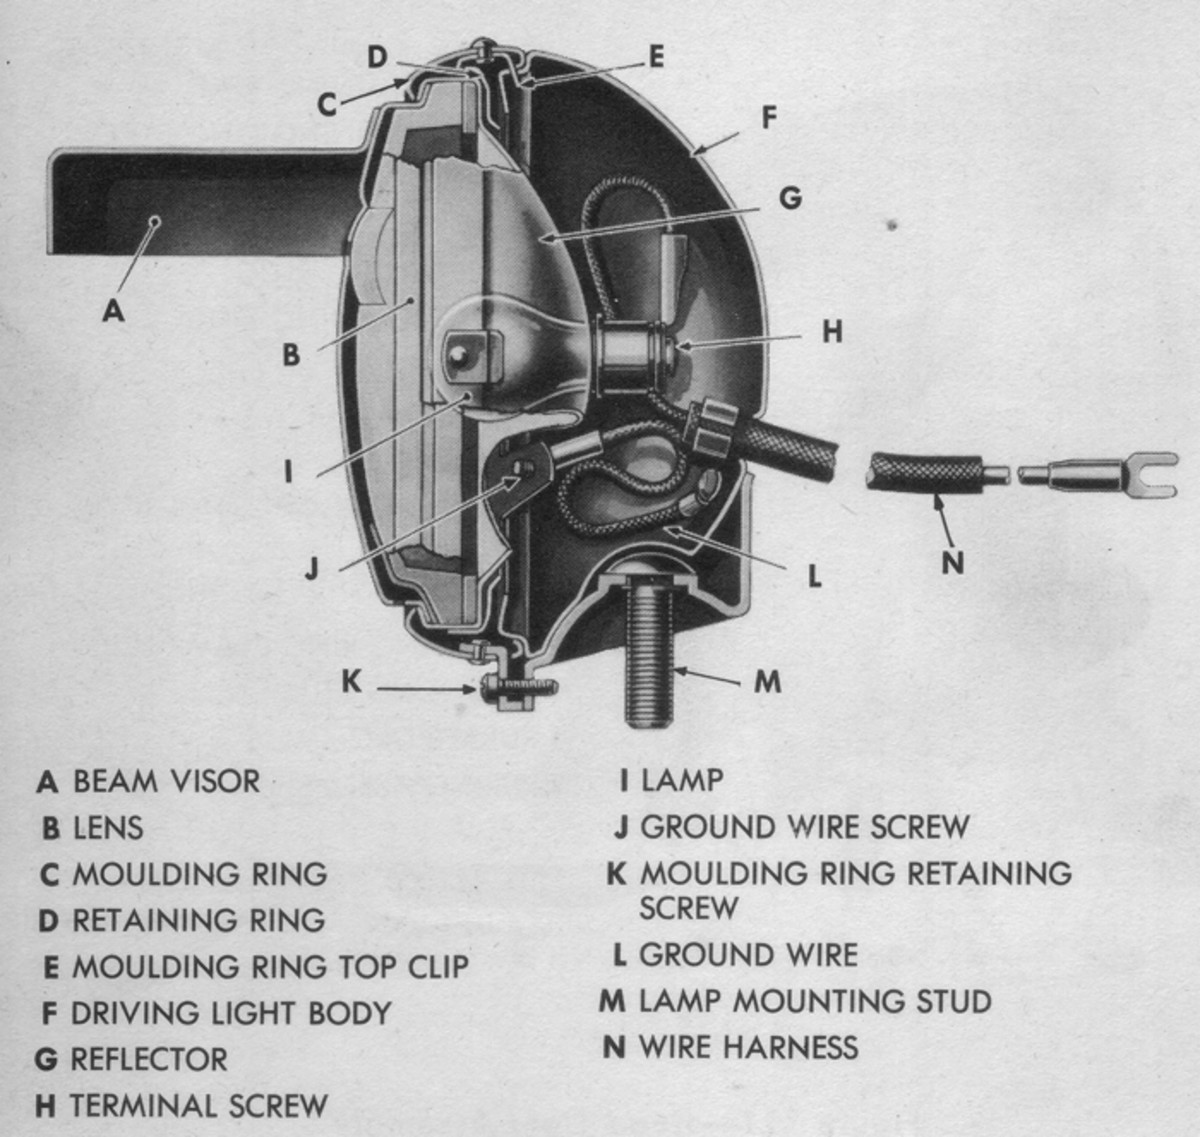 The blackout driving lamp of both WWII and many M-series vehicles consisted of a sealed-beam unit with a special lens and metal shield which allowed only a thin slit of light to be projected directly ahead. of the vehicle.